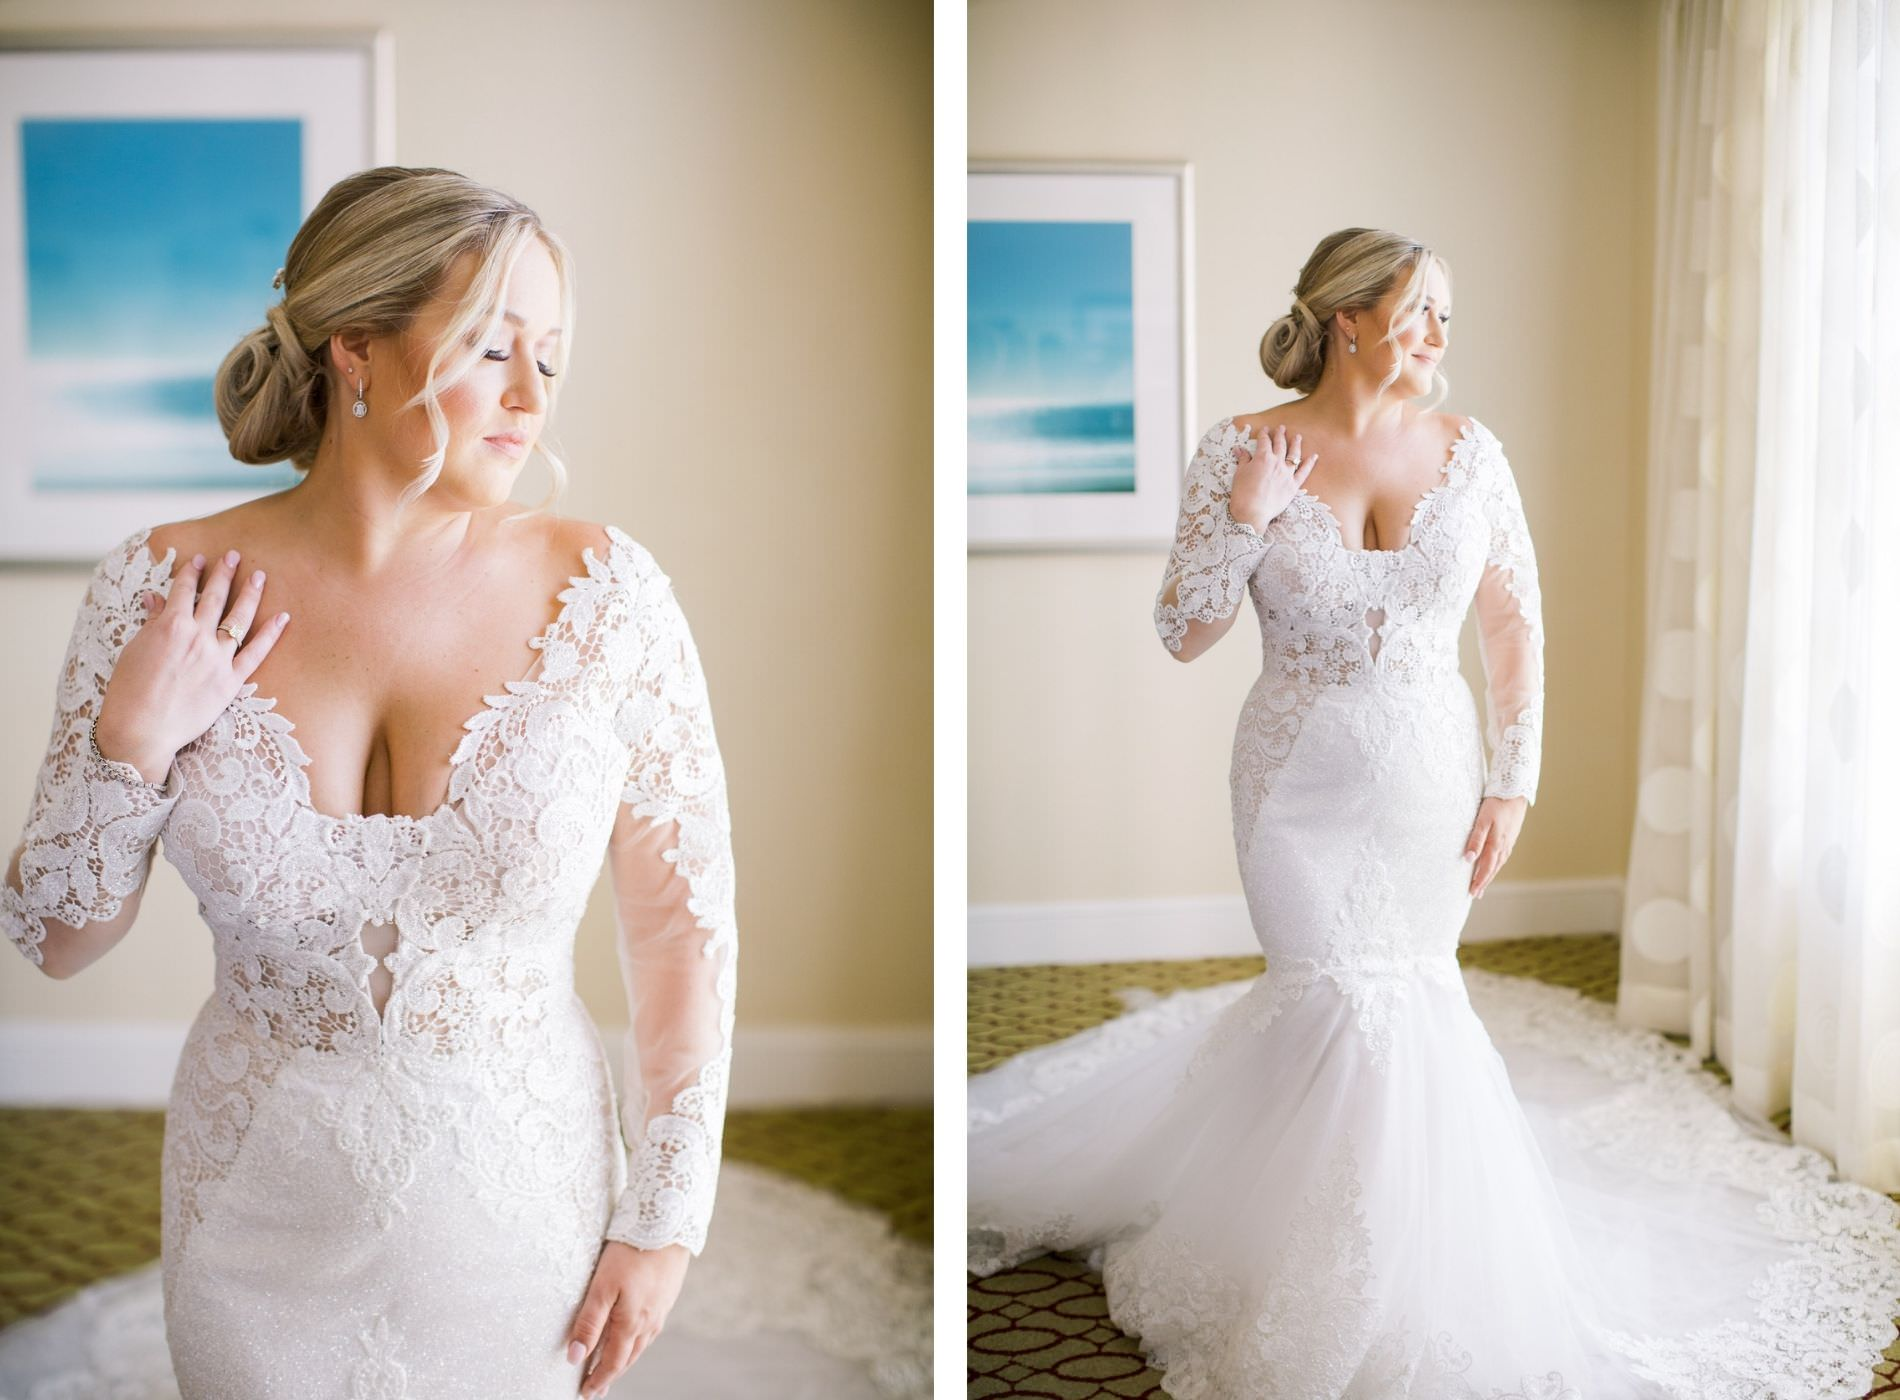 Bride Wearing Lace and Illusion Long Sleeve Plunging Neckline Wedding Dress Beauty Portrait